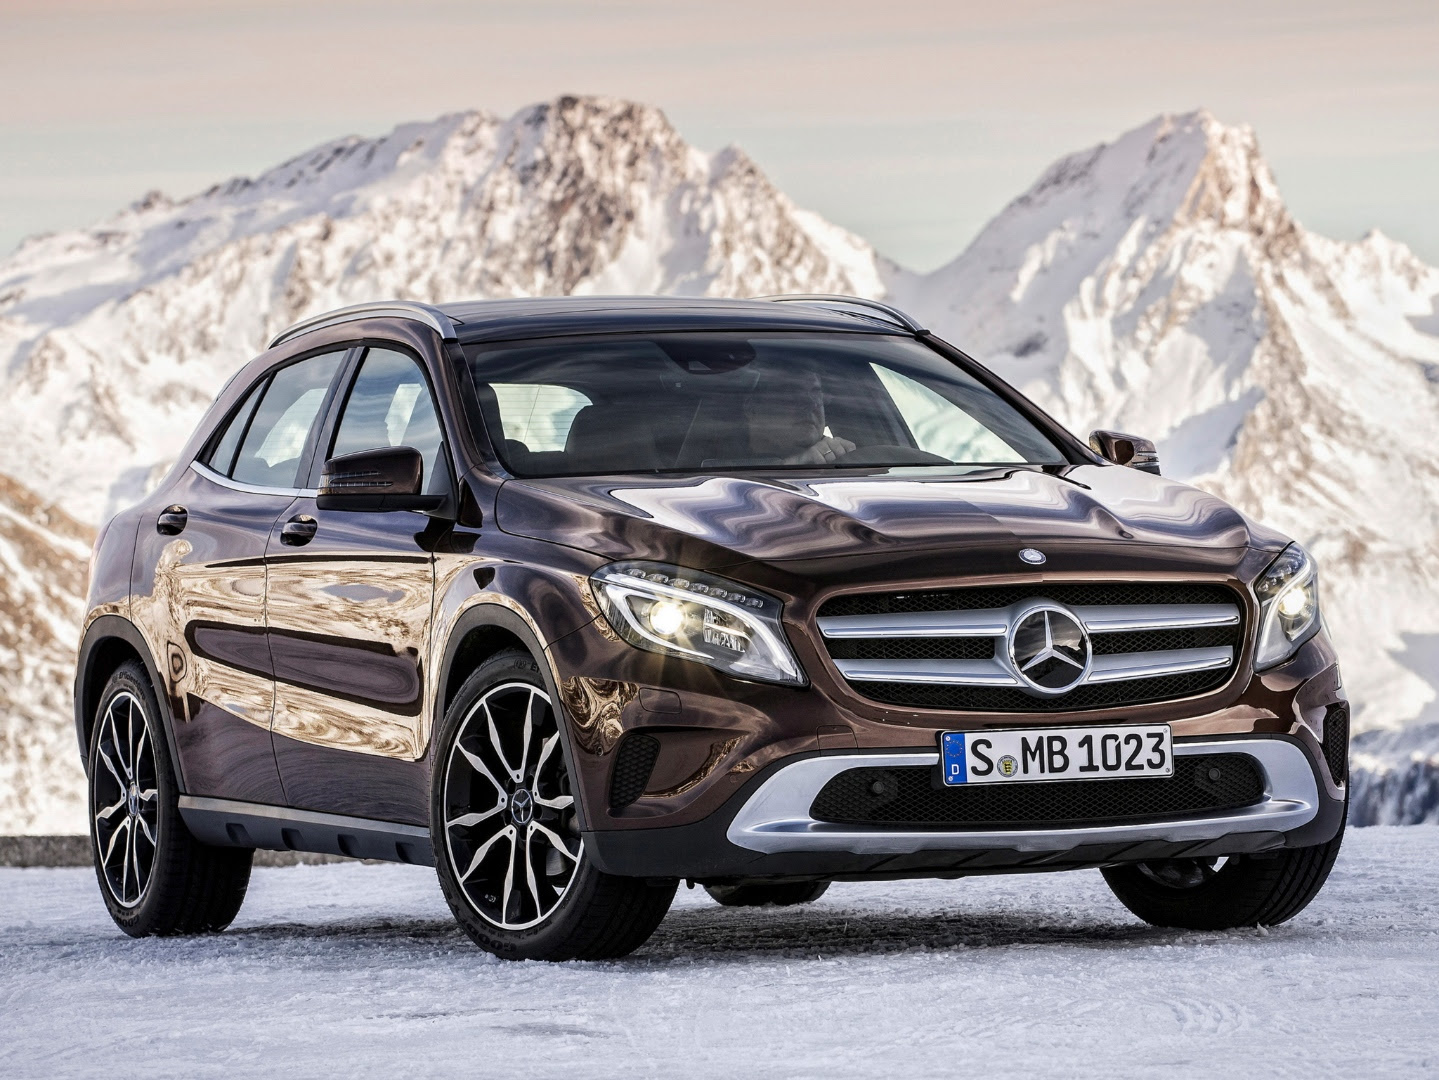 Mercedes-Benz GLA Crossover/SUV to be Manufactured in ...